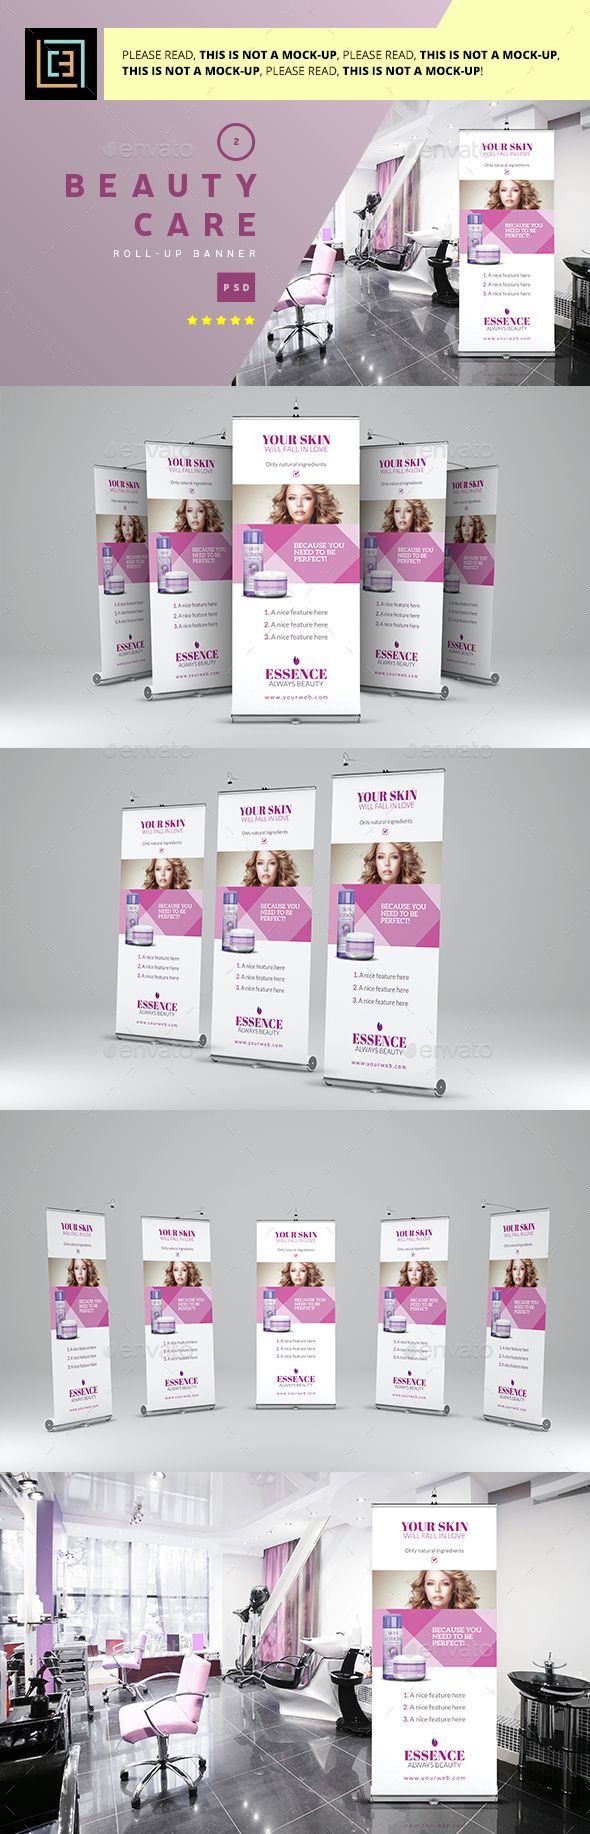 Beauty Care - Roll-Up Banner Template PSD. Download here: https://graphicriver.net/item/beauty-care-rollup-banner-2/17360415?ref=ksioks